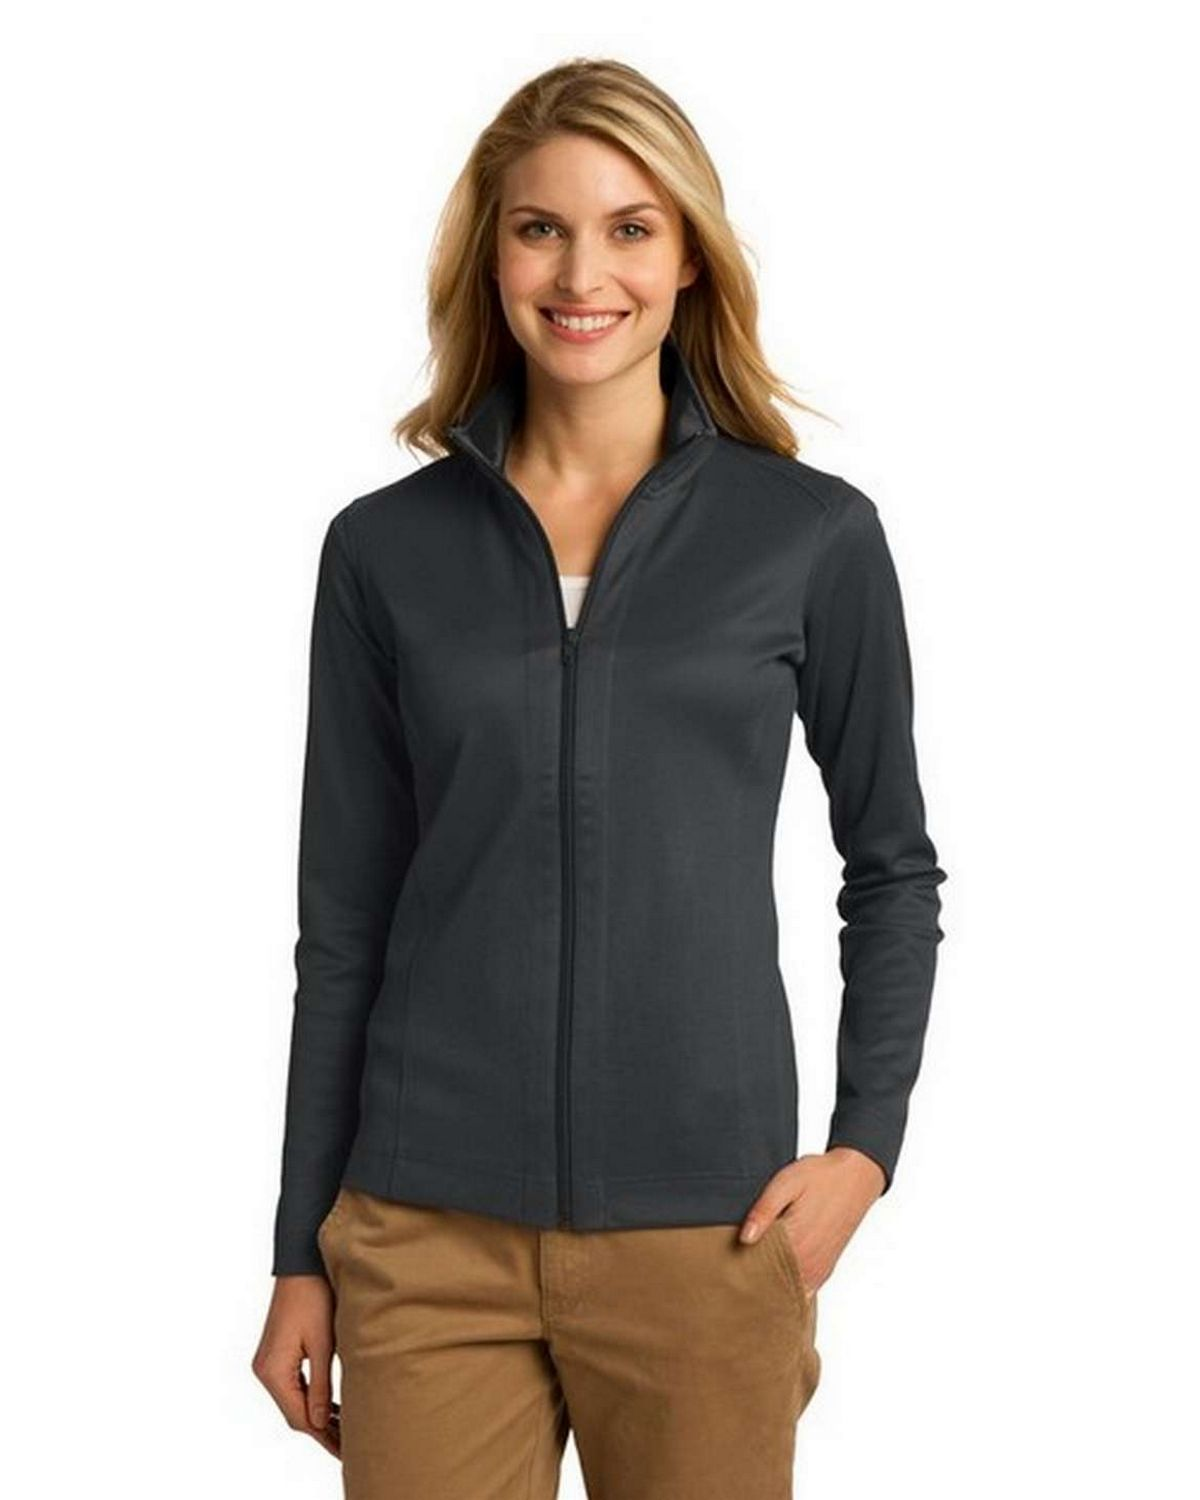 Port Authority L805 Ladies Heavyweight Vertical Texture Jacket